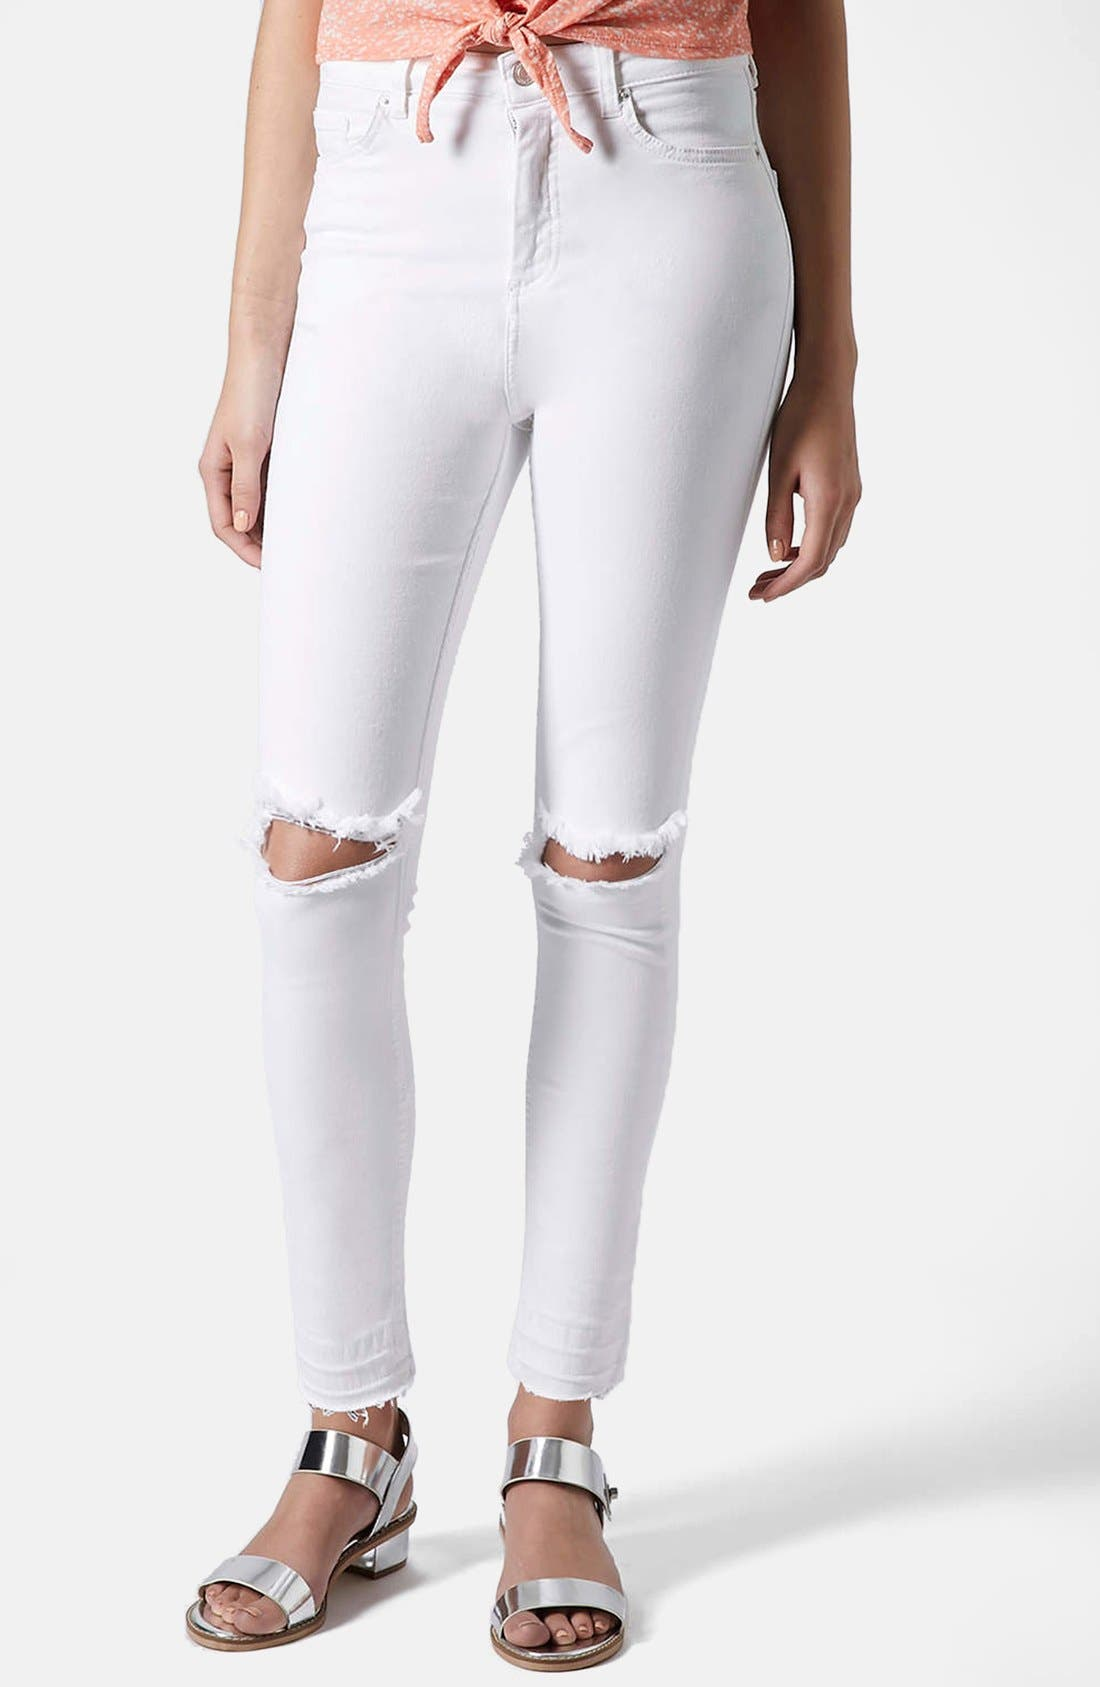 Main Image - Topshop Moto 'Jamie' Ripped High Rise Ankle Skinny Jeans (White) (Regular & Short)